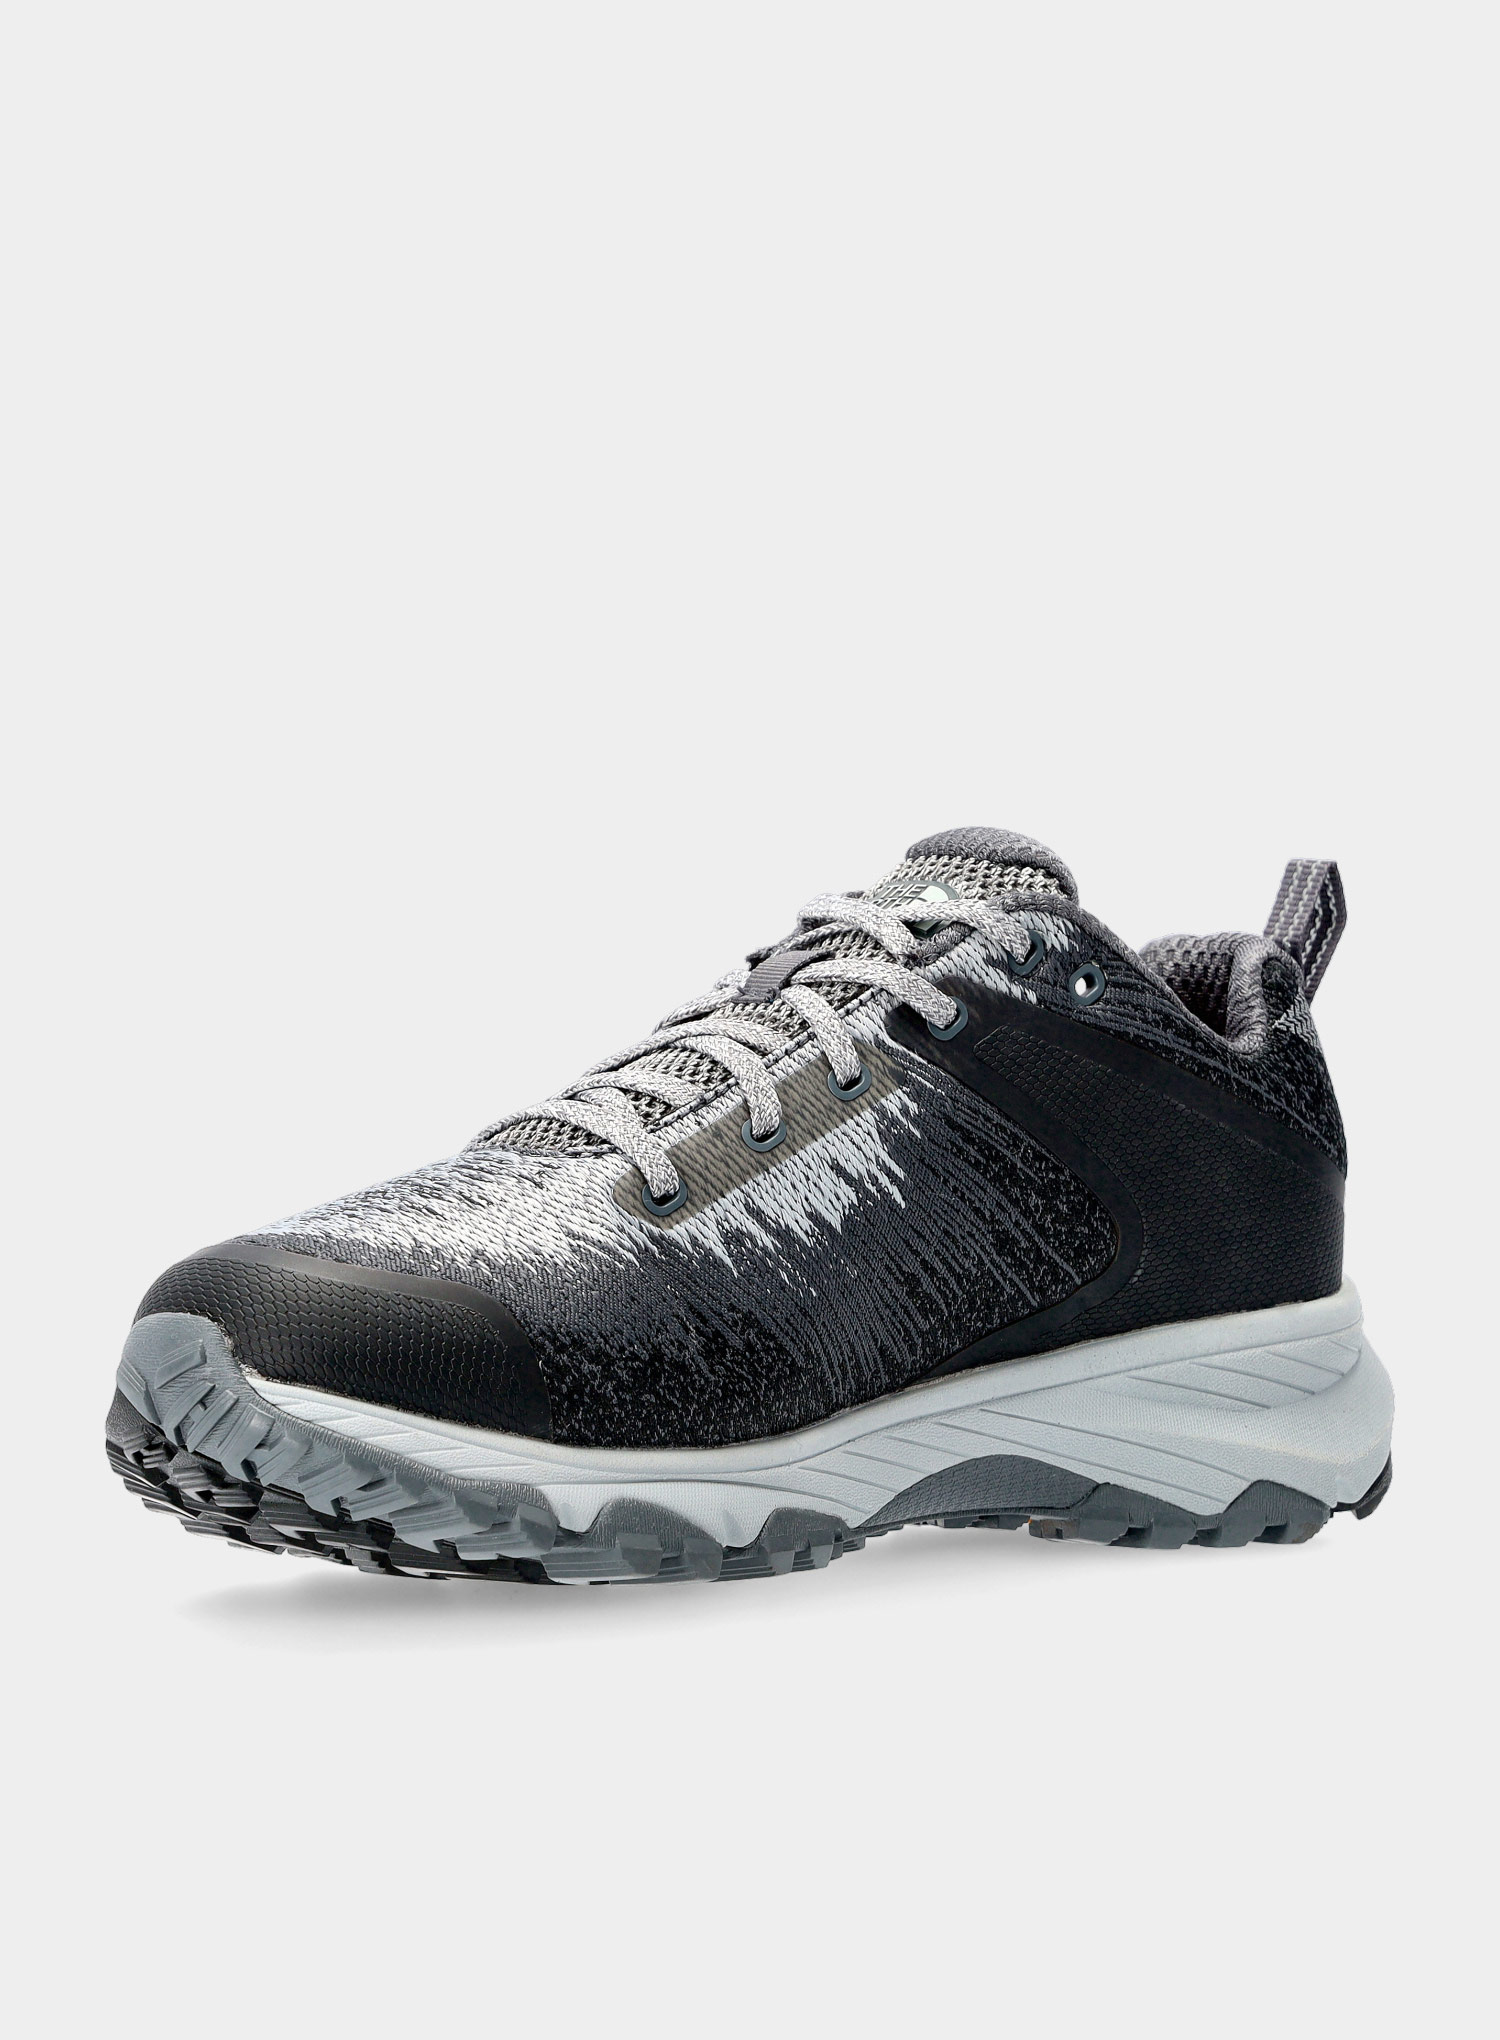 Buty The North Face Ultra Fastpack IV FutureLight - grey - zdjęcie nr. 4